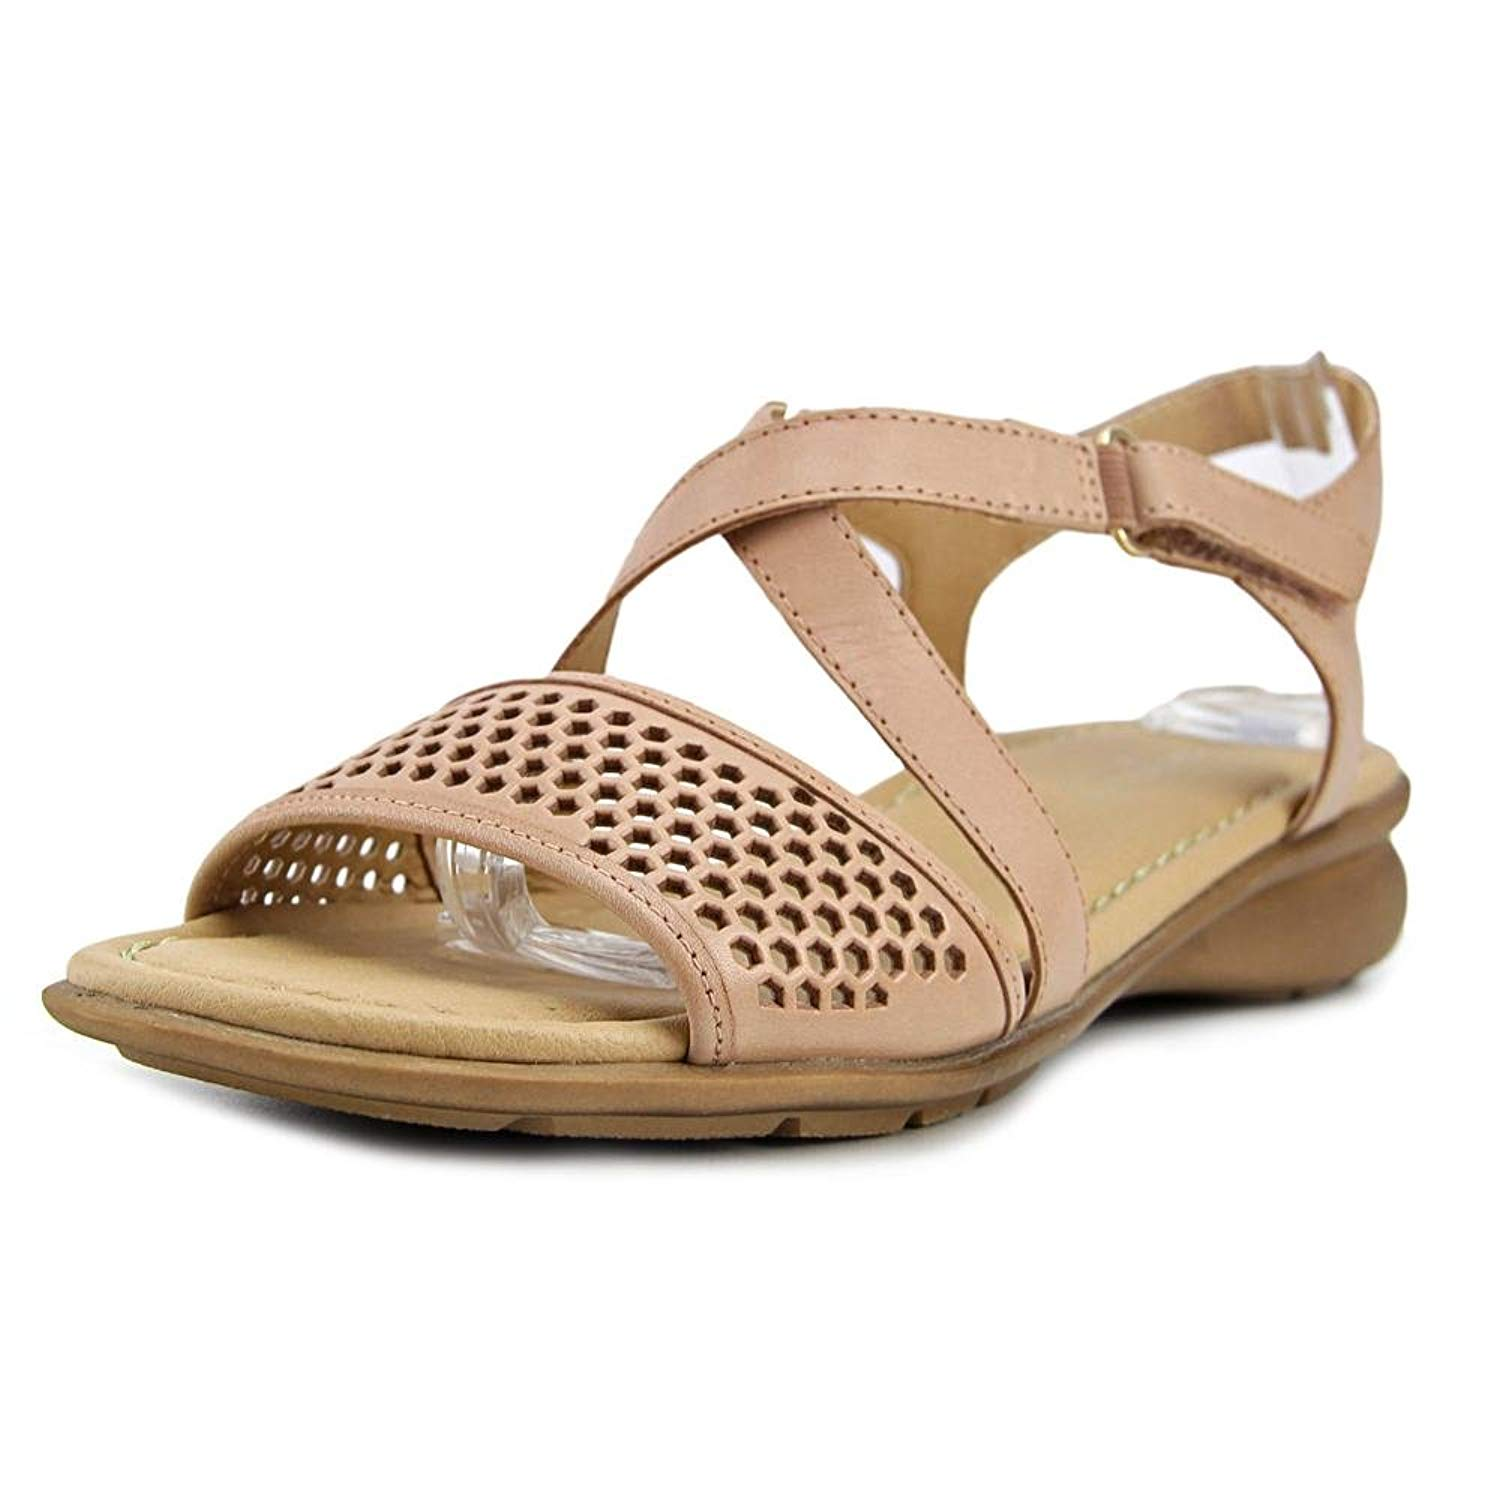 f7c065f9042f Naturalizer Womens Juniper Leather Open Toe Casual Slide Sandals